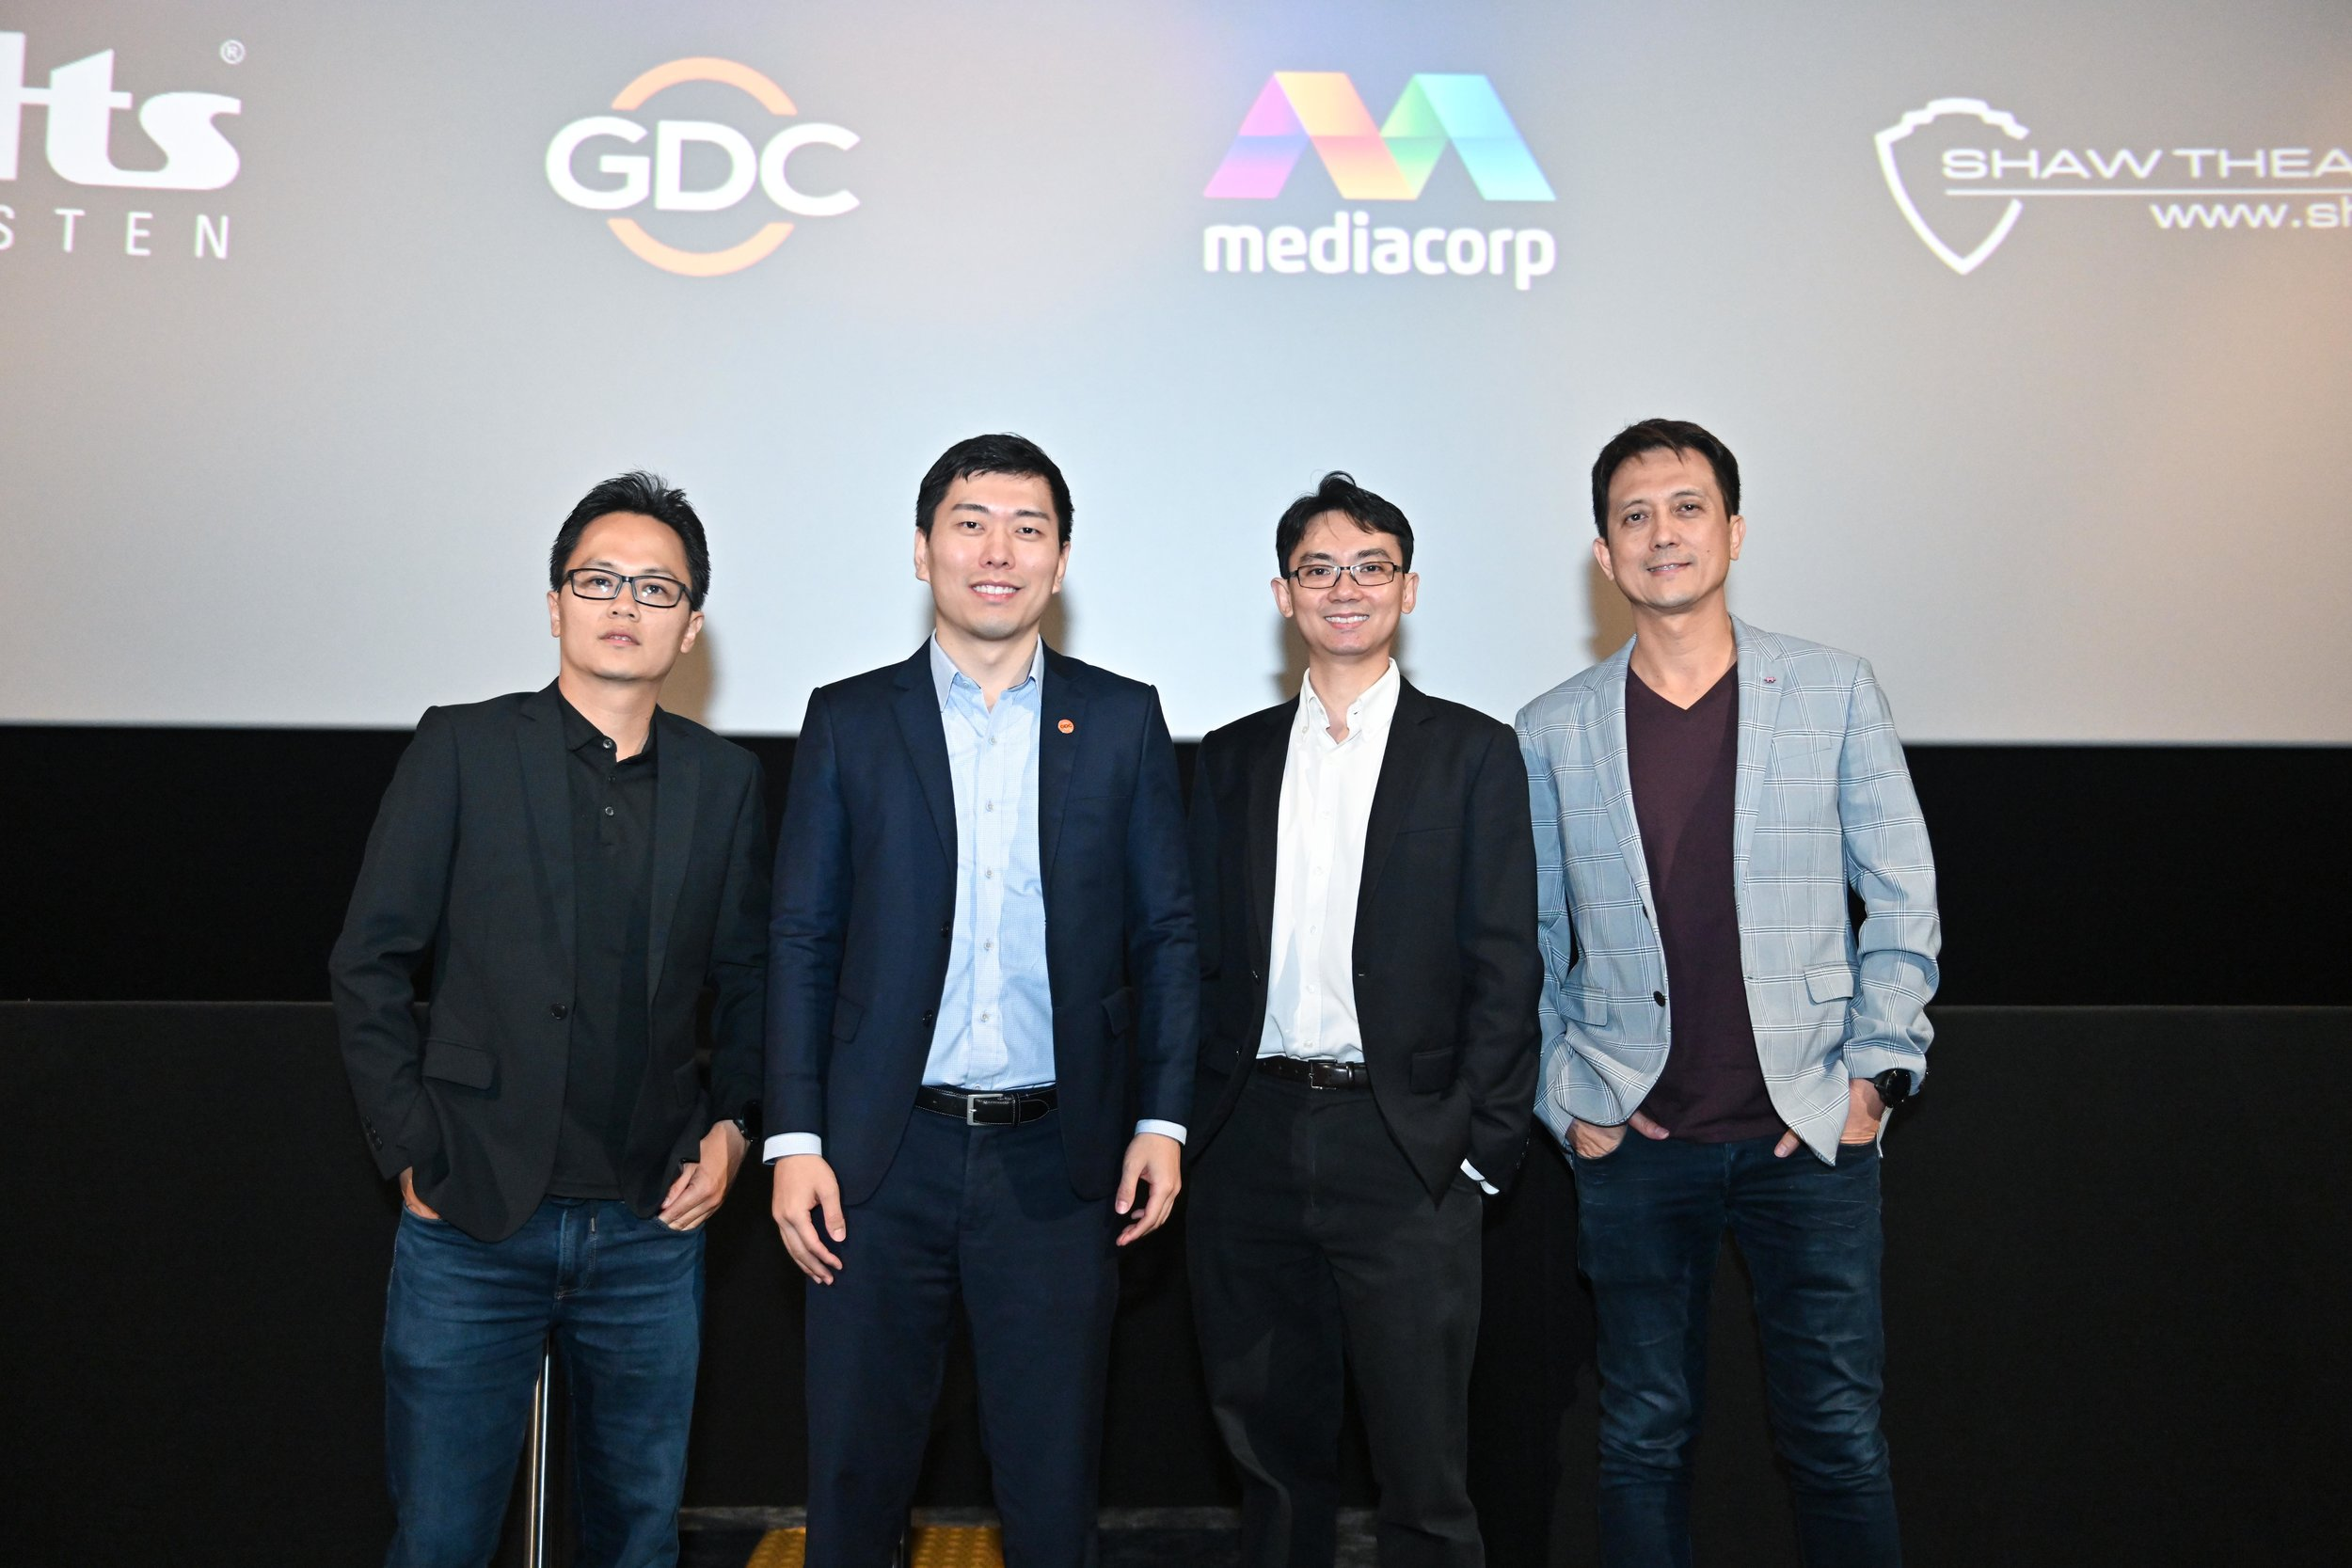 (Left to right) Mr Cedric Tio, Senior Staff Engineer, DTS Singapore; Mr Sungyun Gim, General Manager, GDC Technology Singapore; Mr Terence Heng, Vice President, Shaw Organisation; and Mr Barry See, Head, Production Resource, Mediacorp